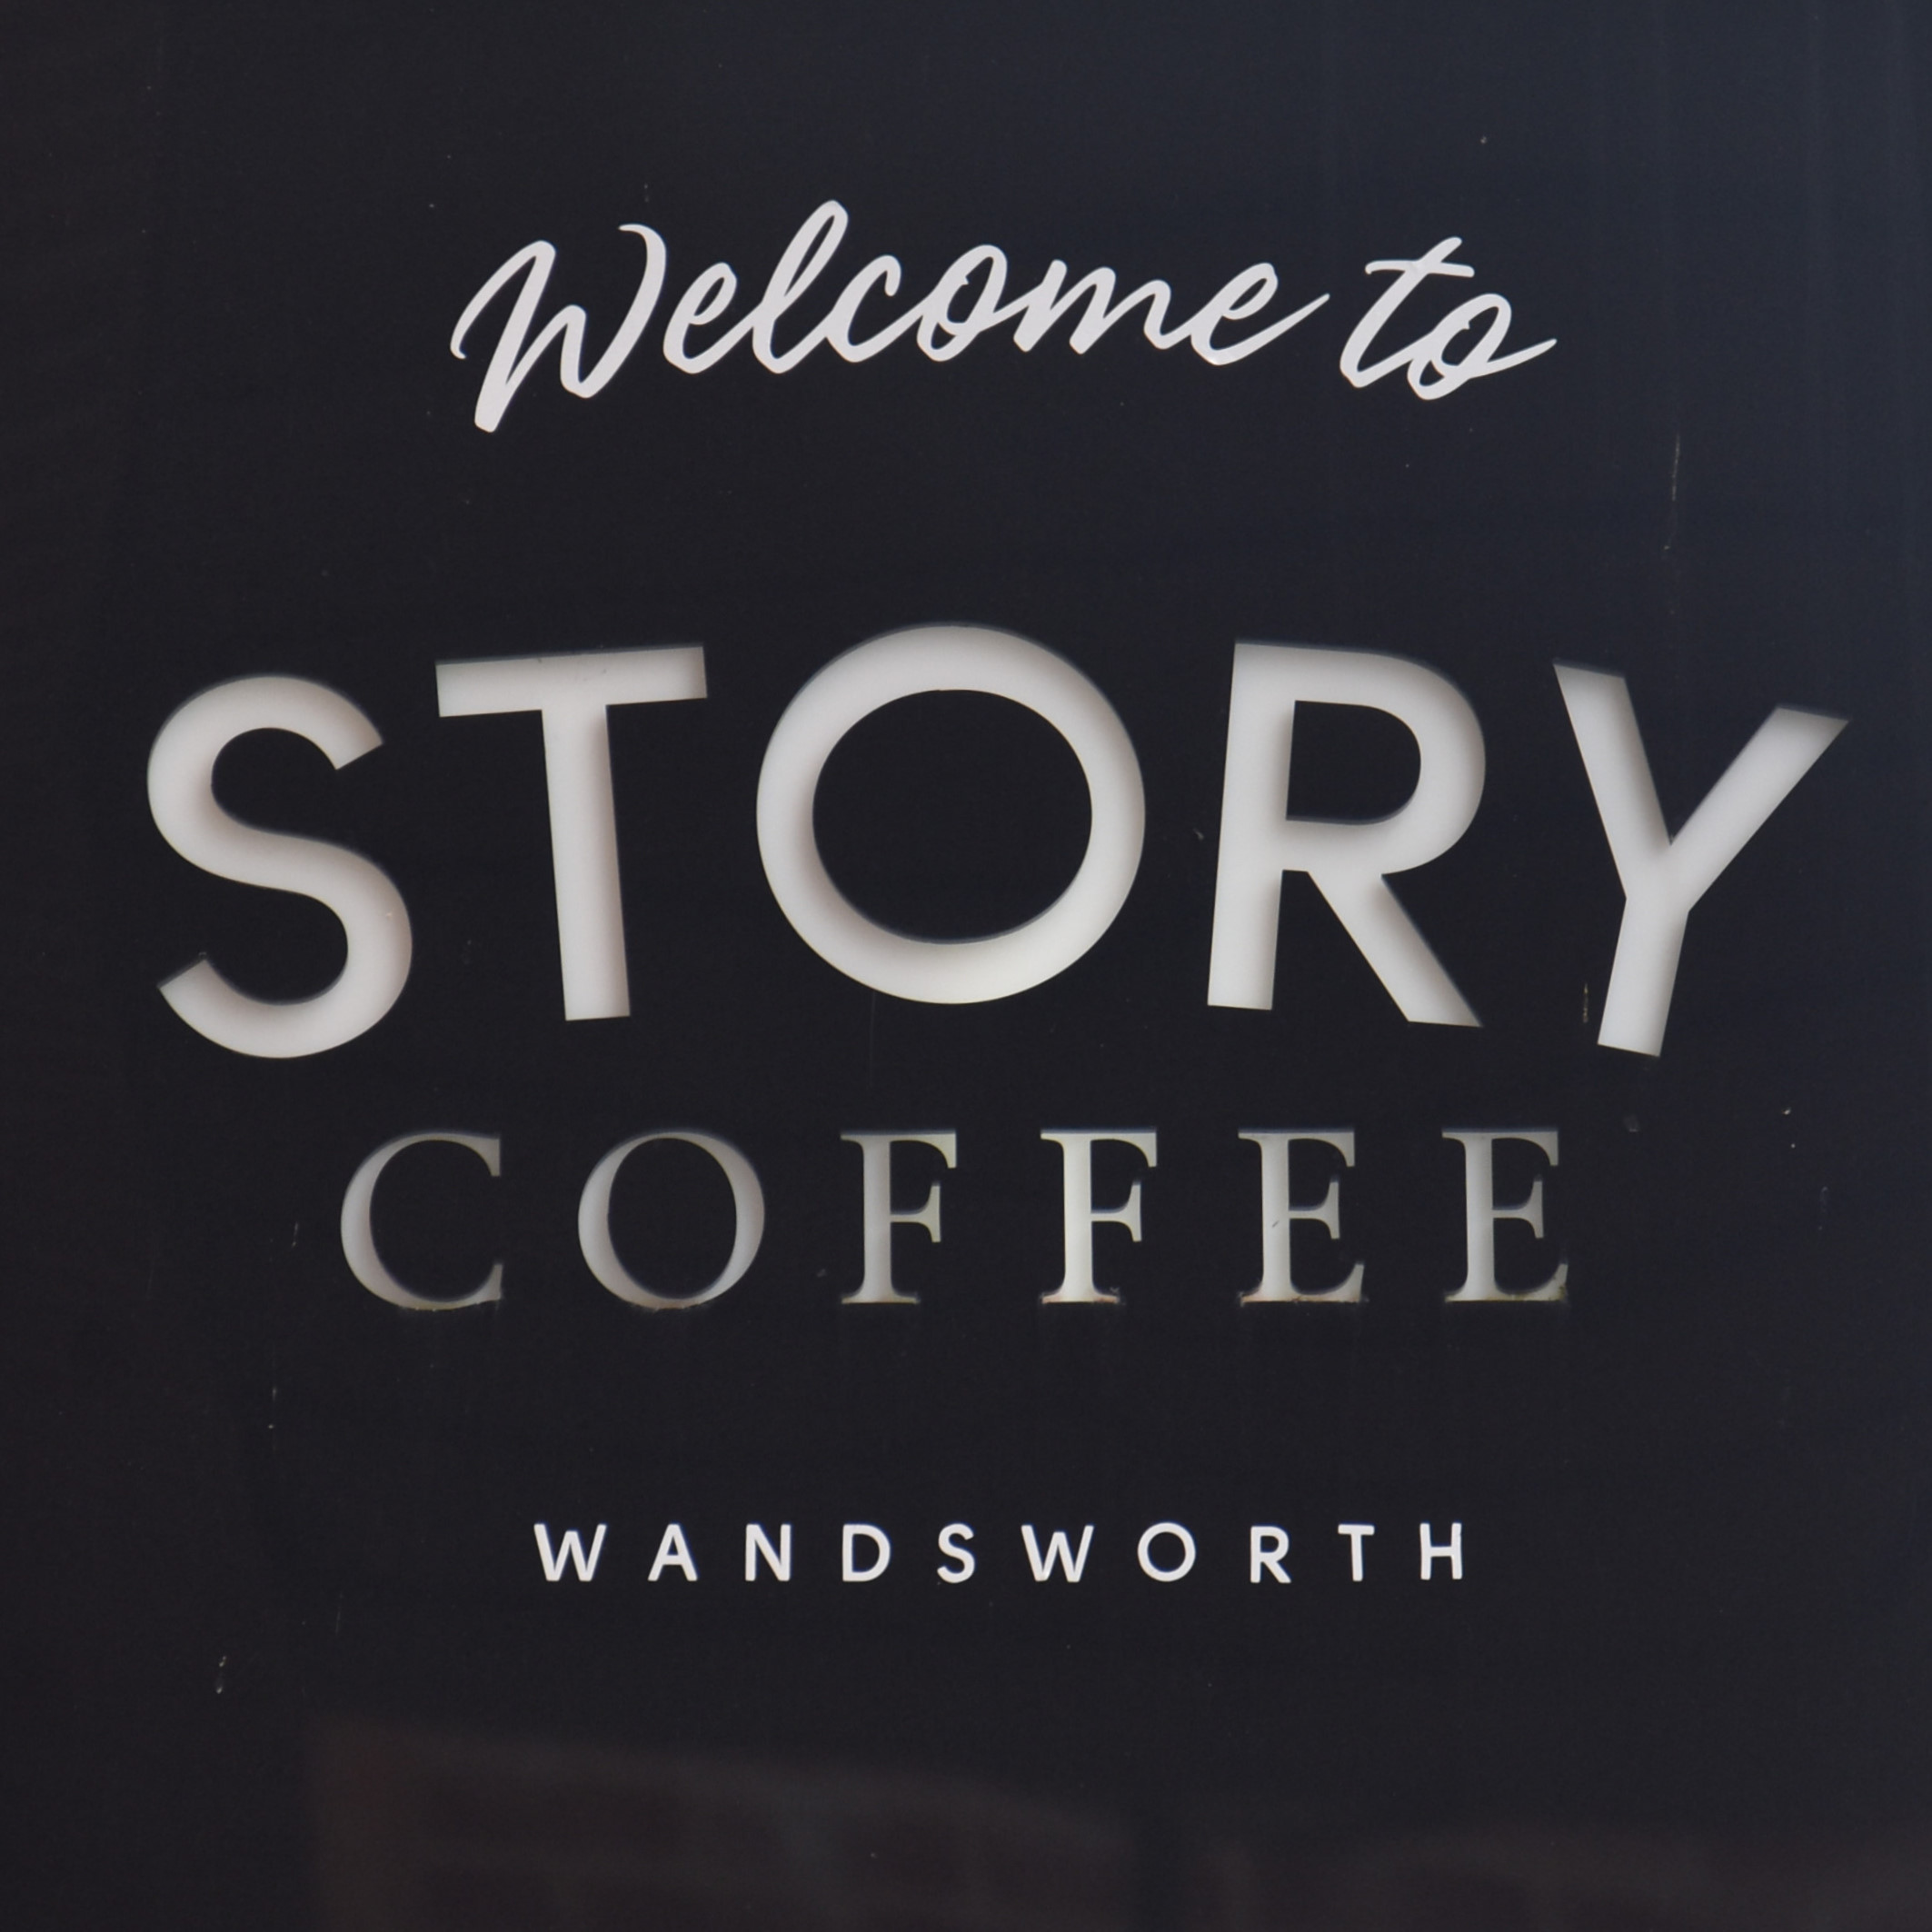 Welcome to Story Coffee Wandsworth, taken from the sign outside.